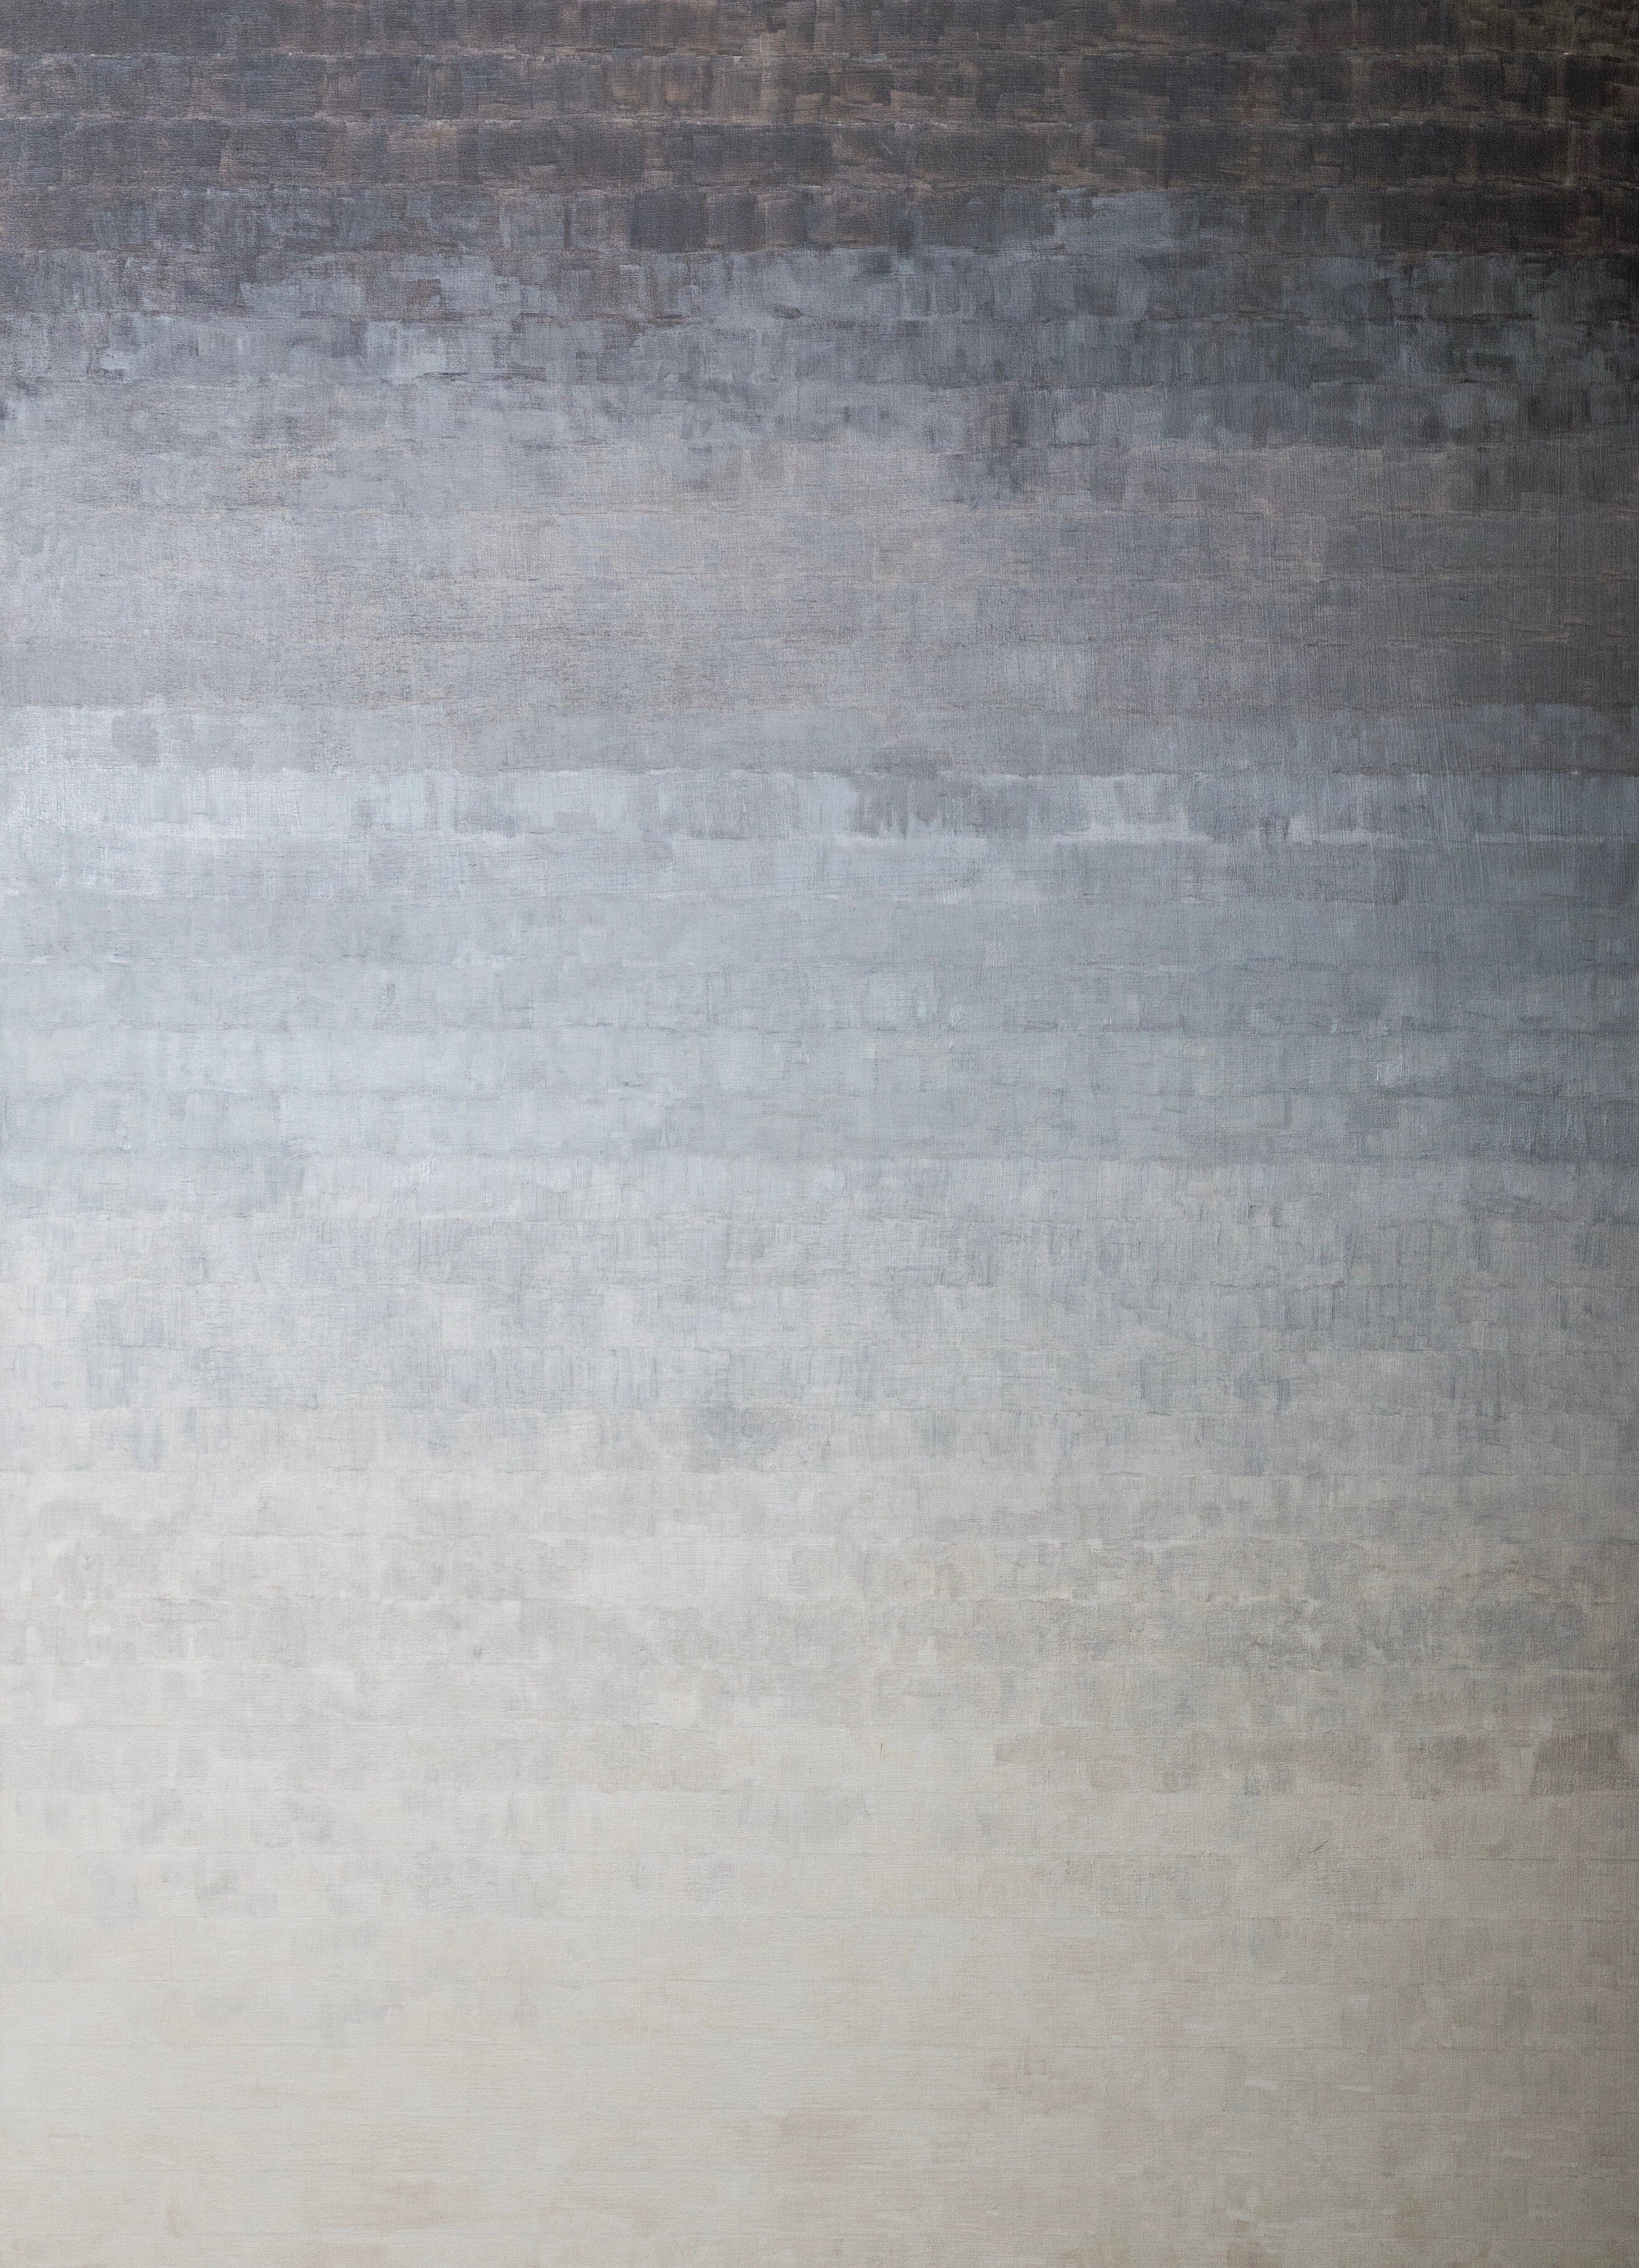 S-239, 2017, oil on canvas, 72 x 52 inches